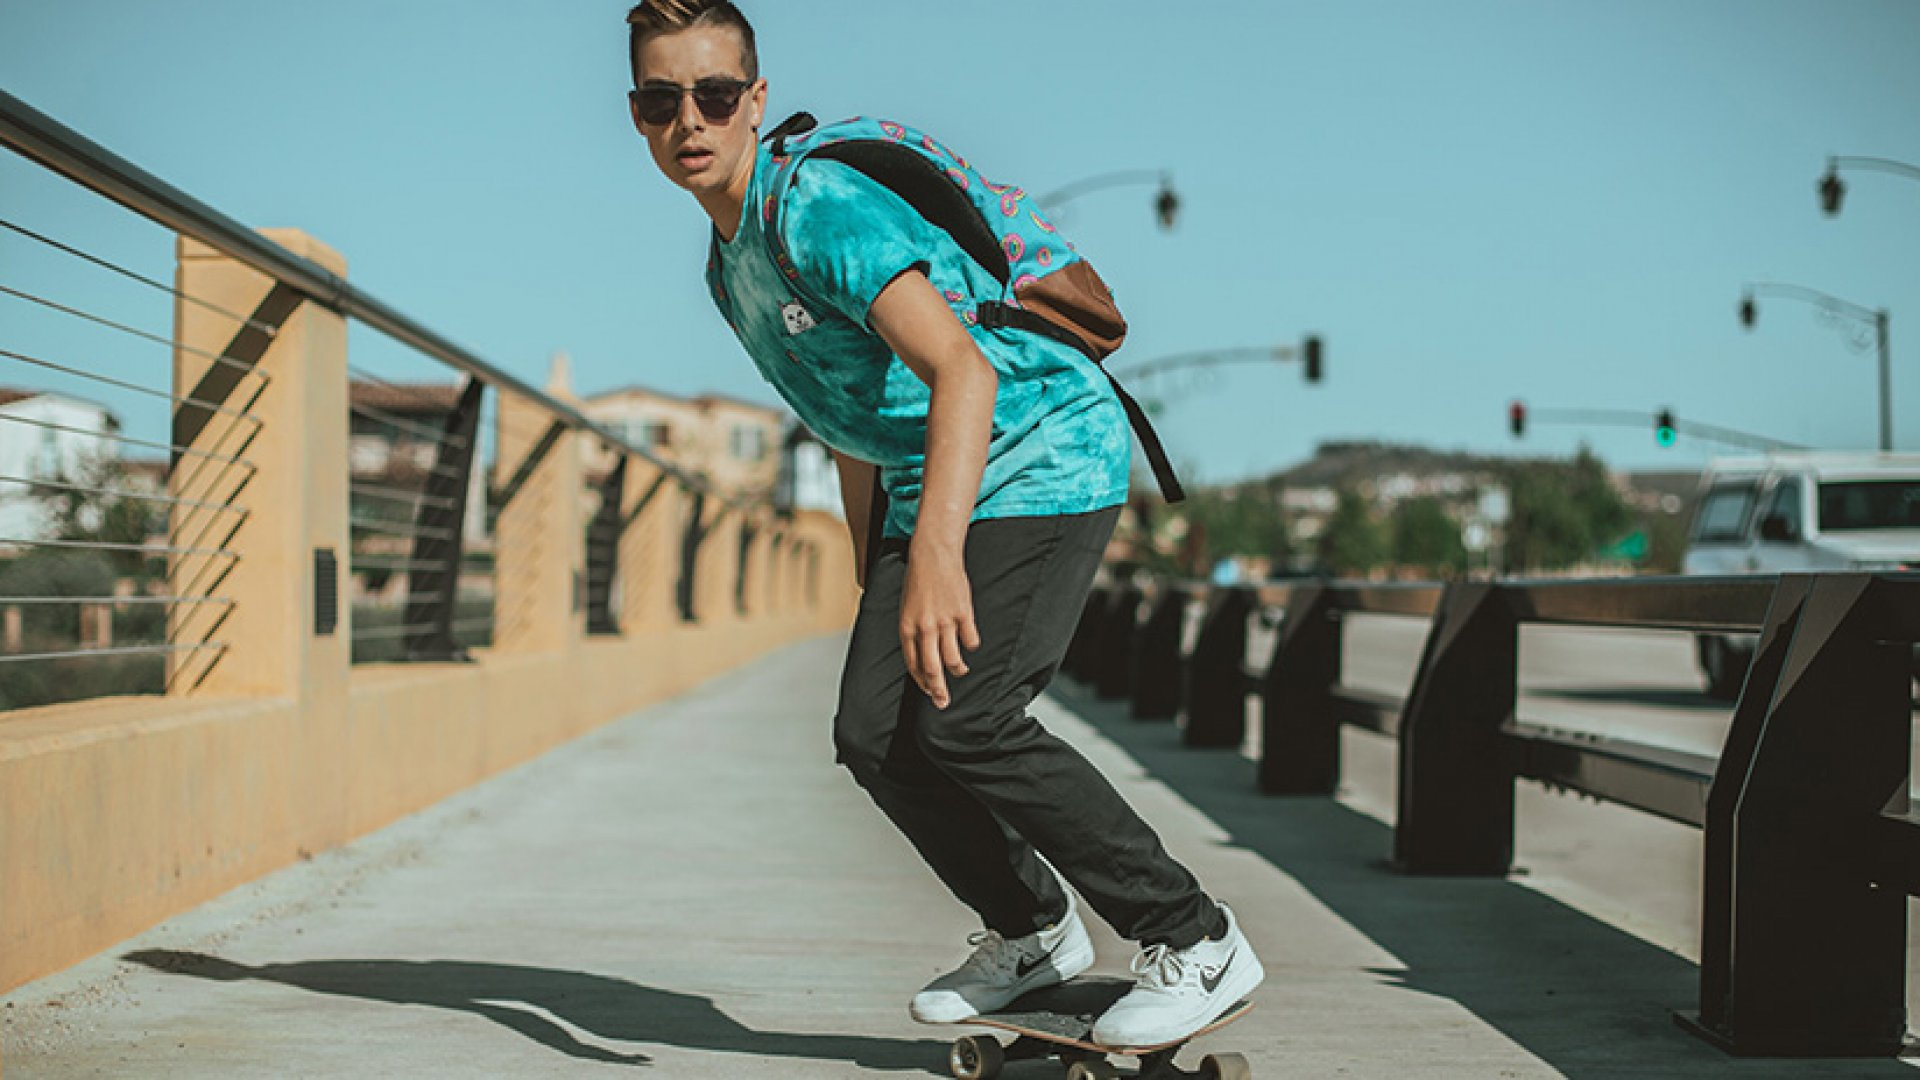 Twelve-year-old Carson Kropfl riding one of Locker Board's Travel Cruisers. Locker Board skateboards are a sustainable line of skateboards he designed to fit inside of backpacks and lockers.